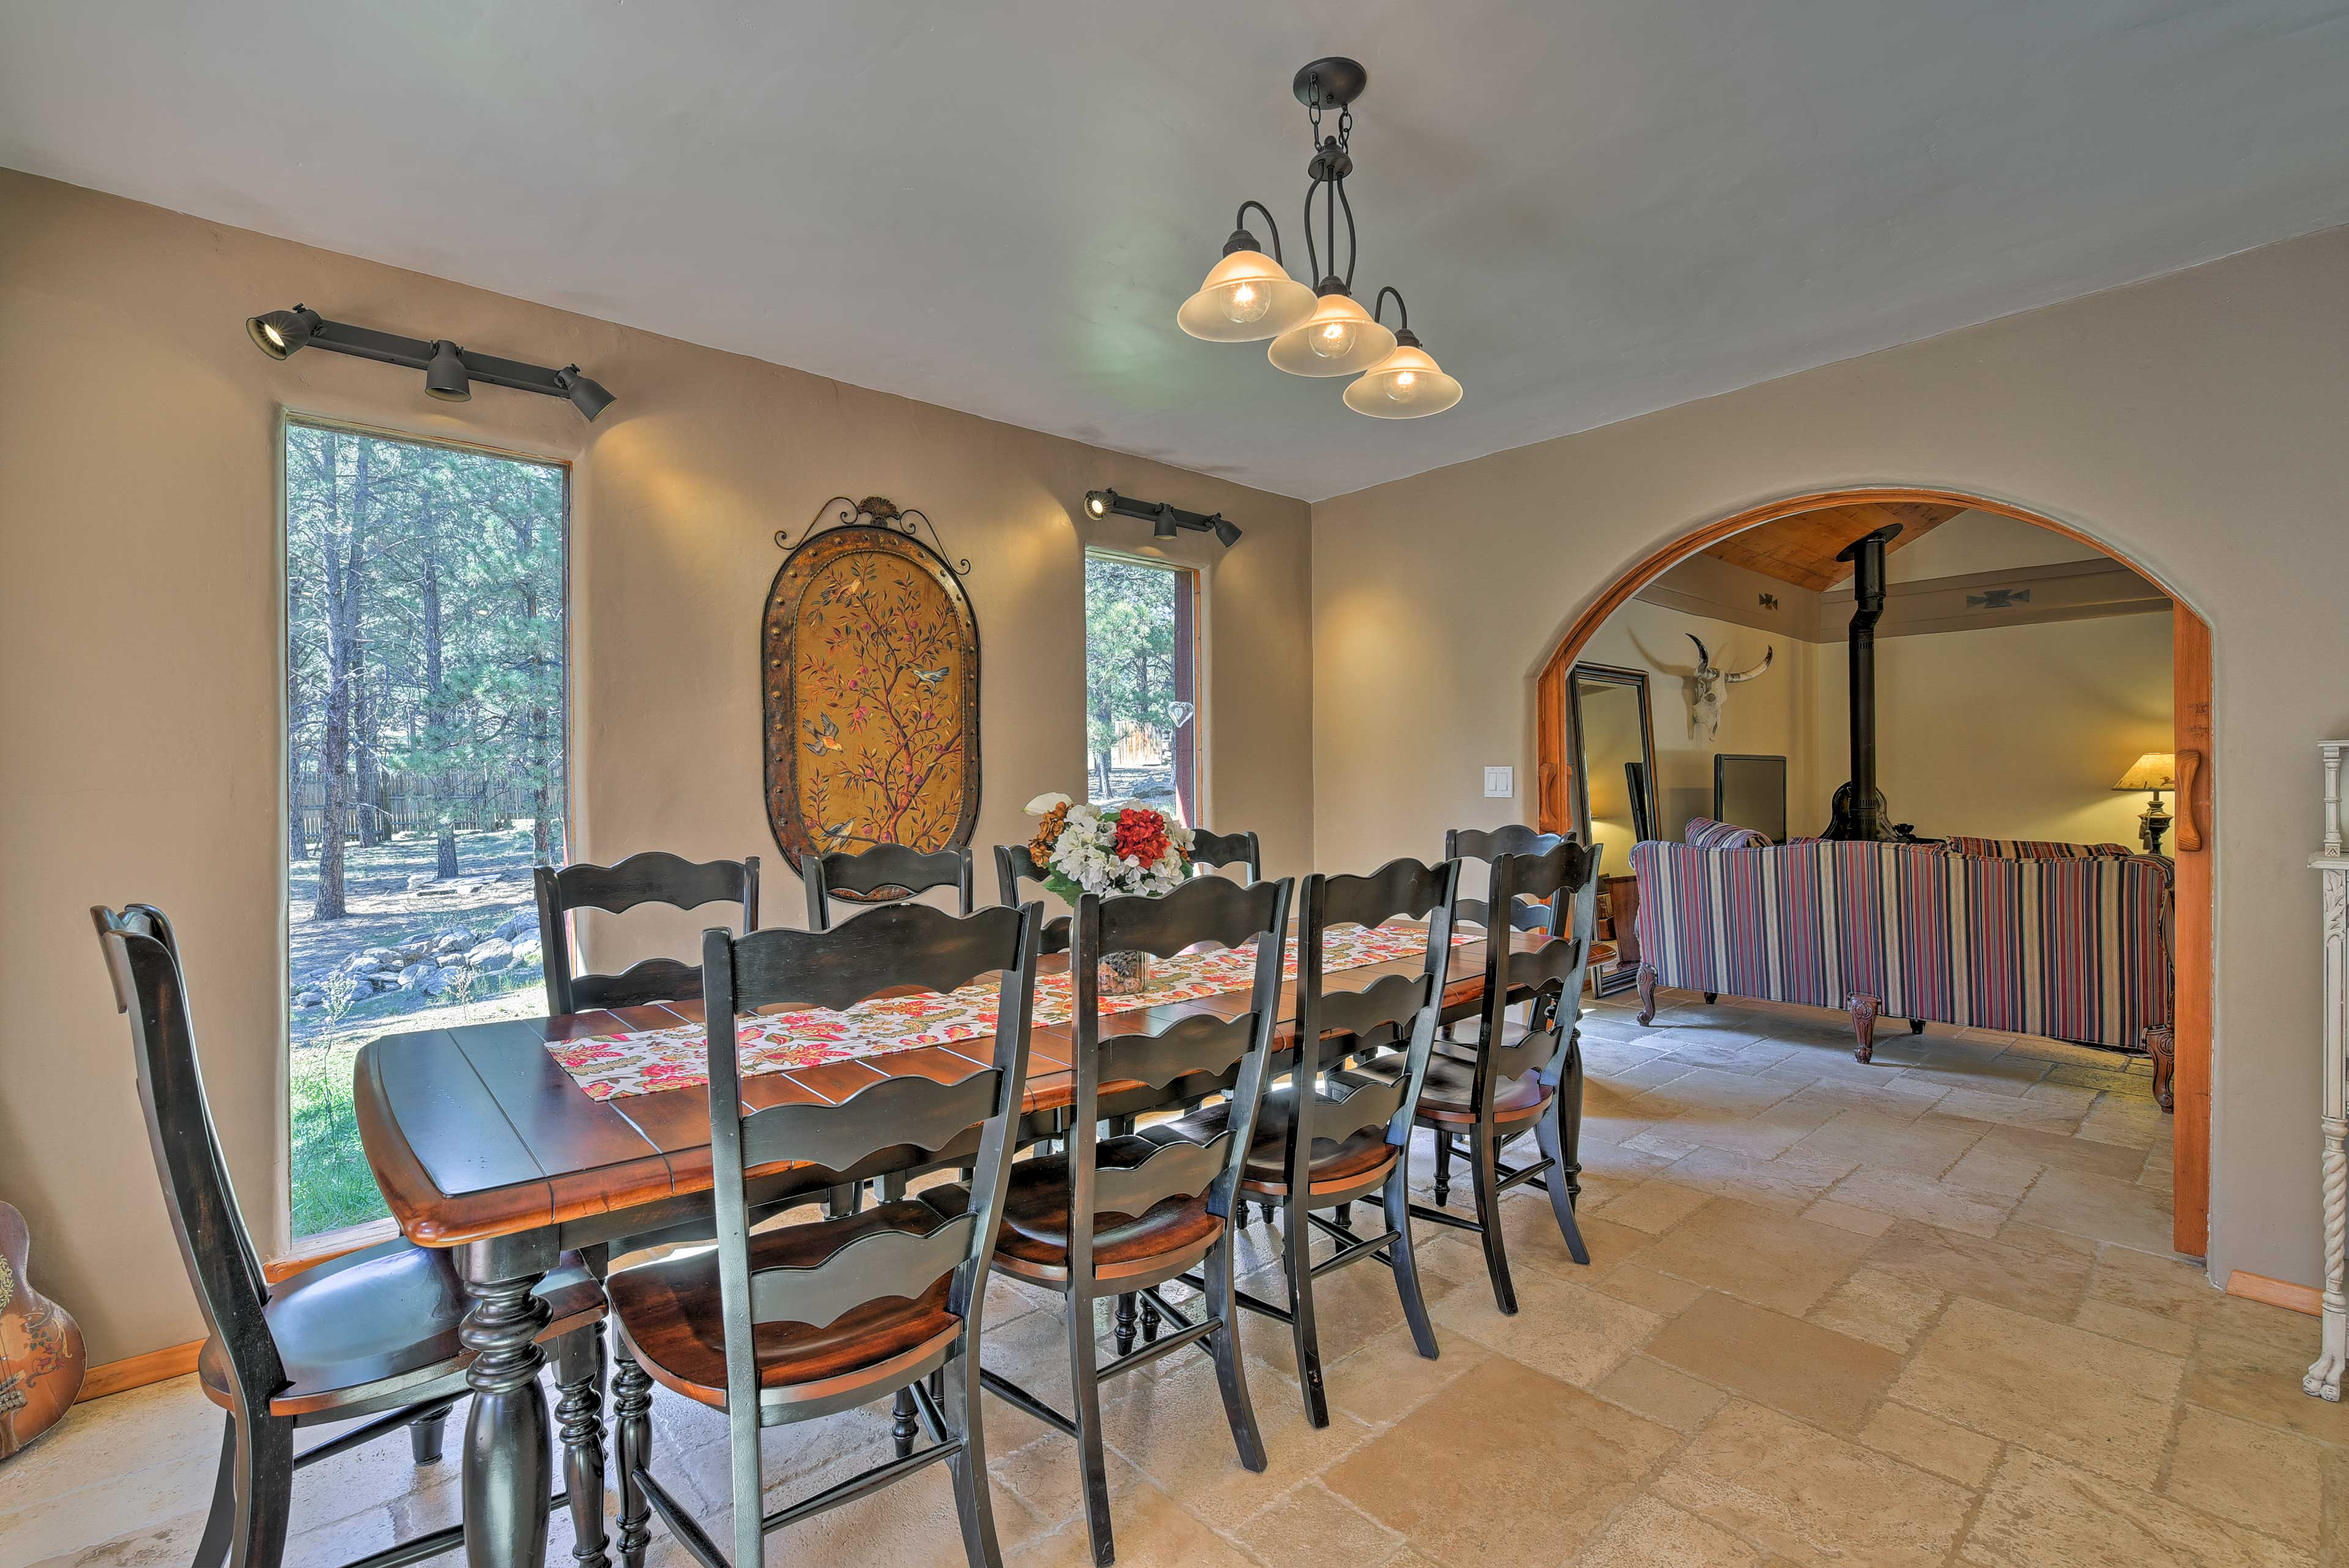 Step through the open archway to the 10-person dining table.